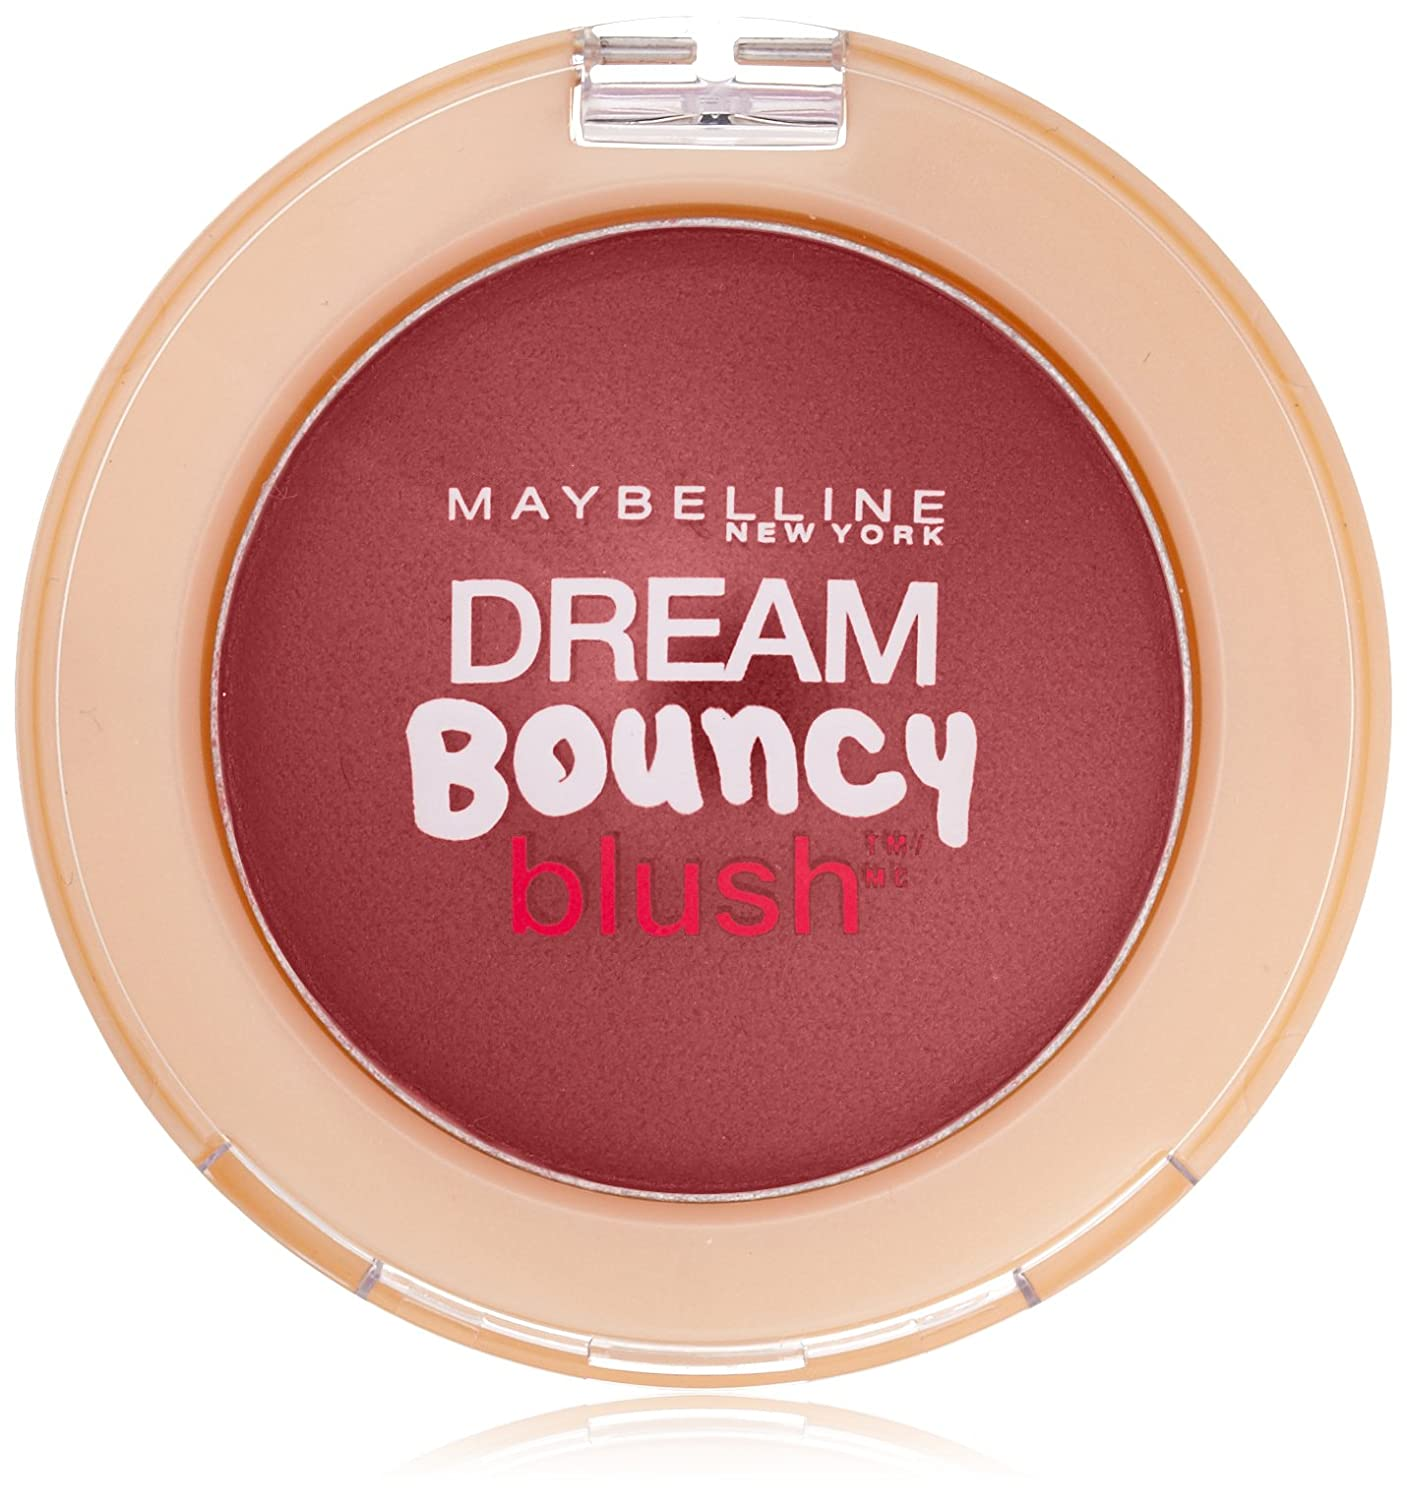 Maybelline New York Dream Bouncy Blush, Fresh Pink, 0.19 Ounce May-3225